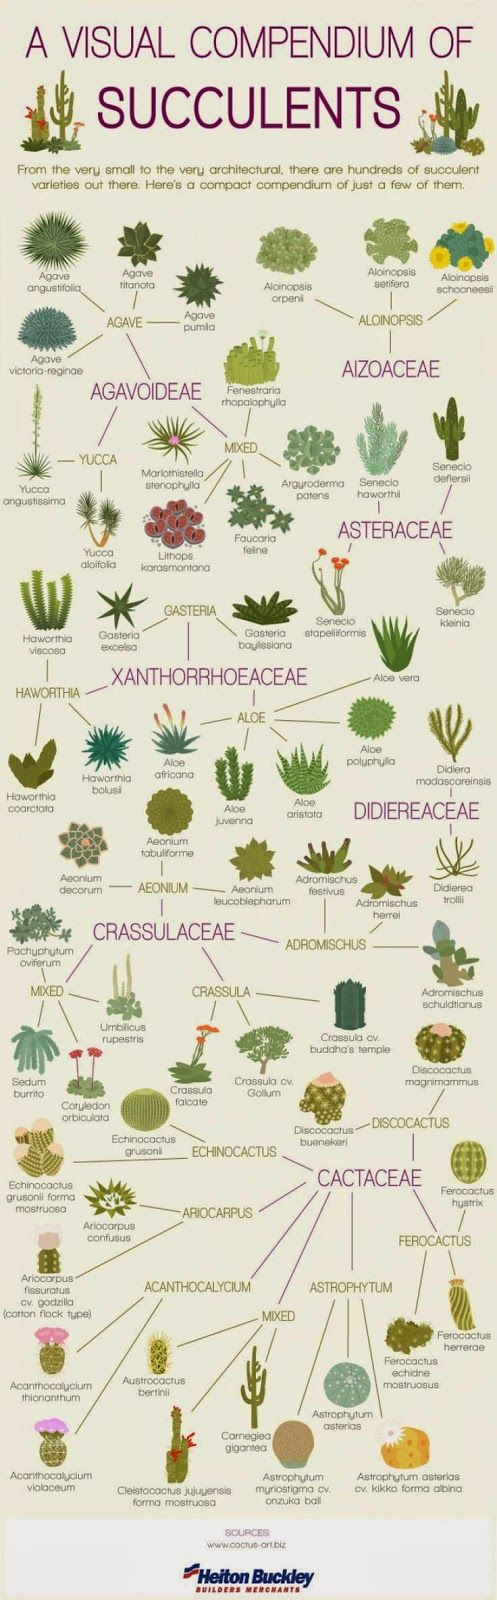 A Visual Compendium of Succulents... - From Moon to Moon / Classification des plantes grasses